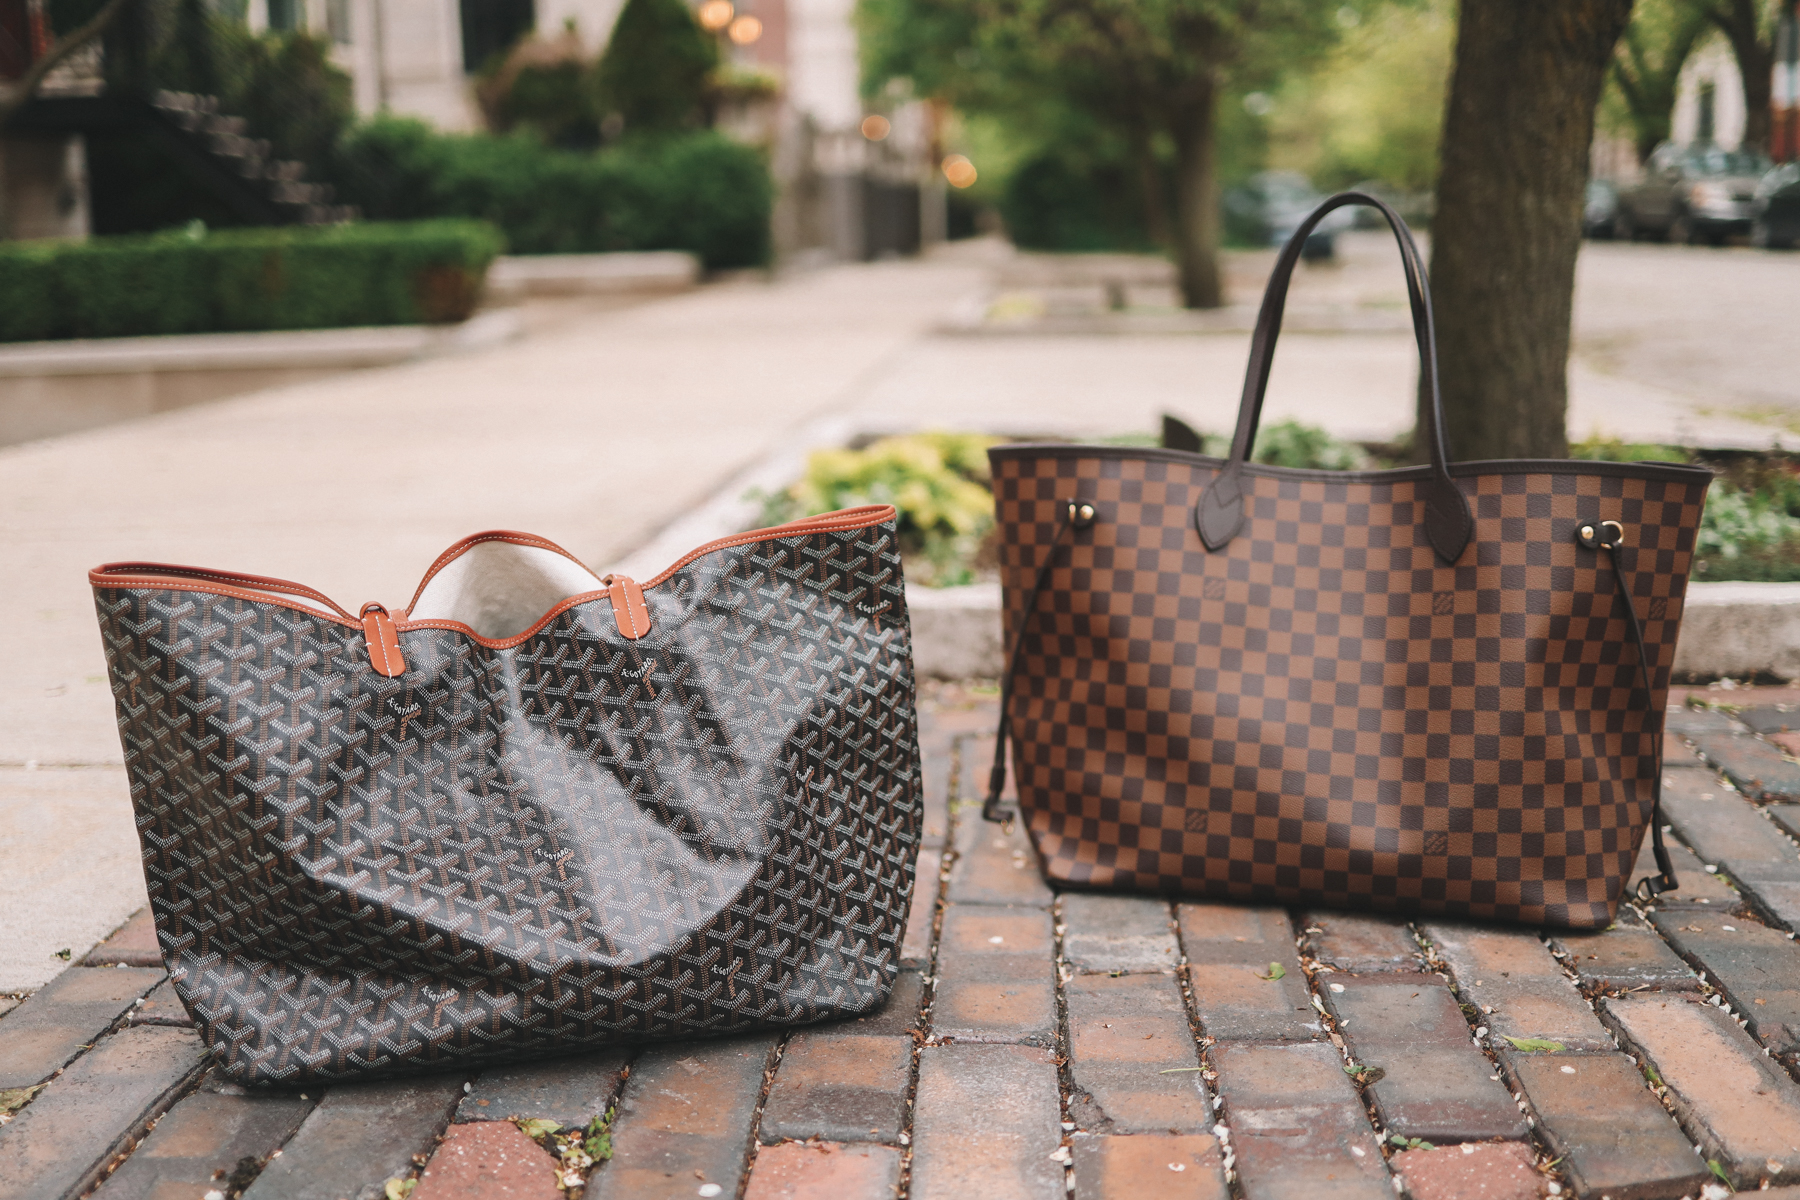 d8d0b3b4f7 Louis Vuitton Neverfull vs Goyard Saint Louis Totes review by Kelly in the  City